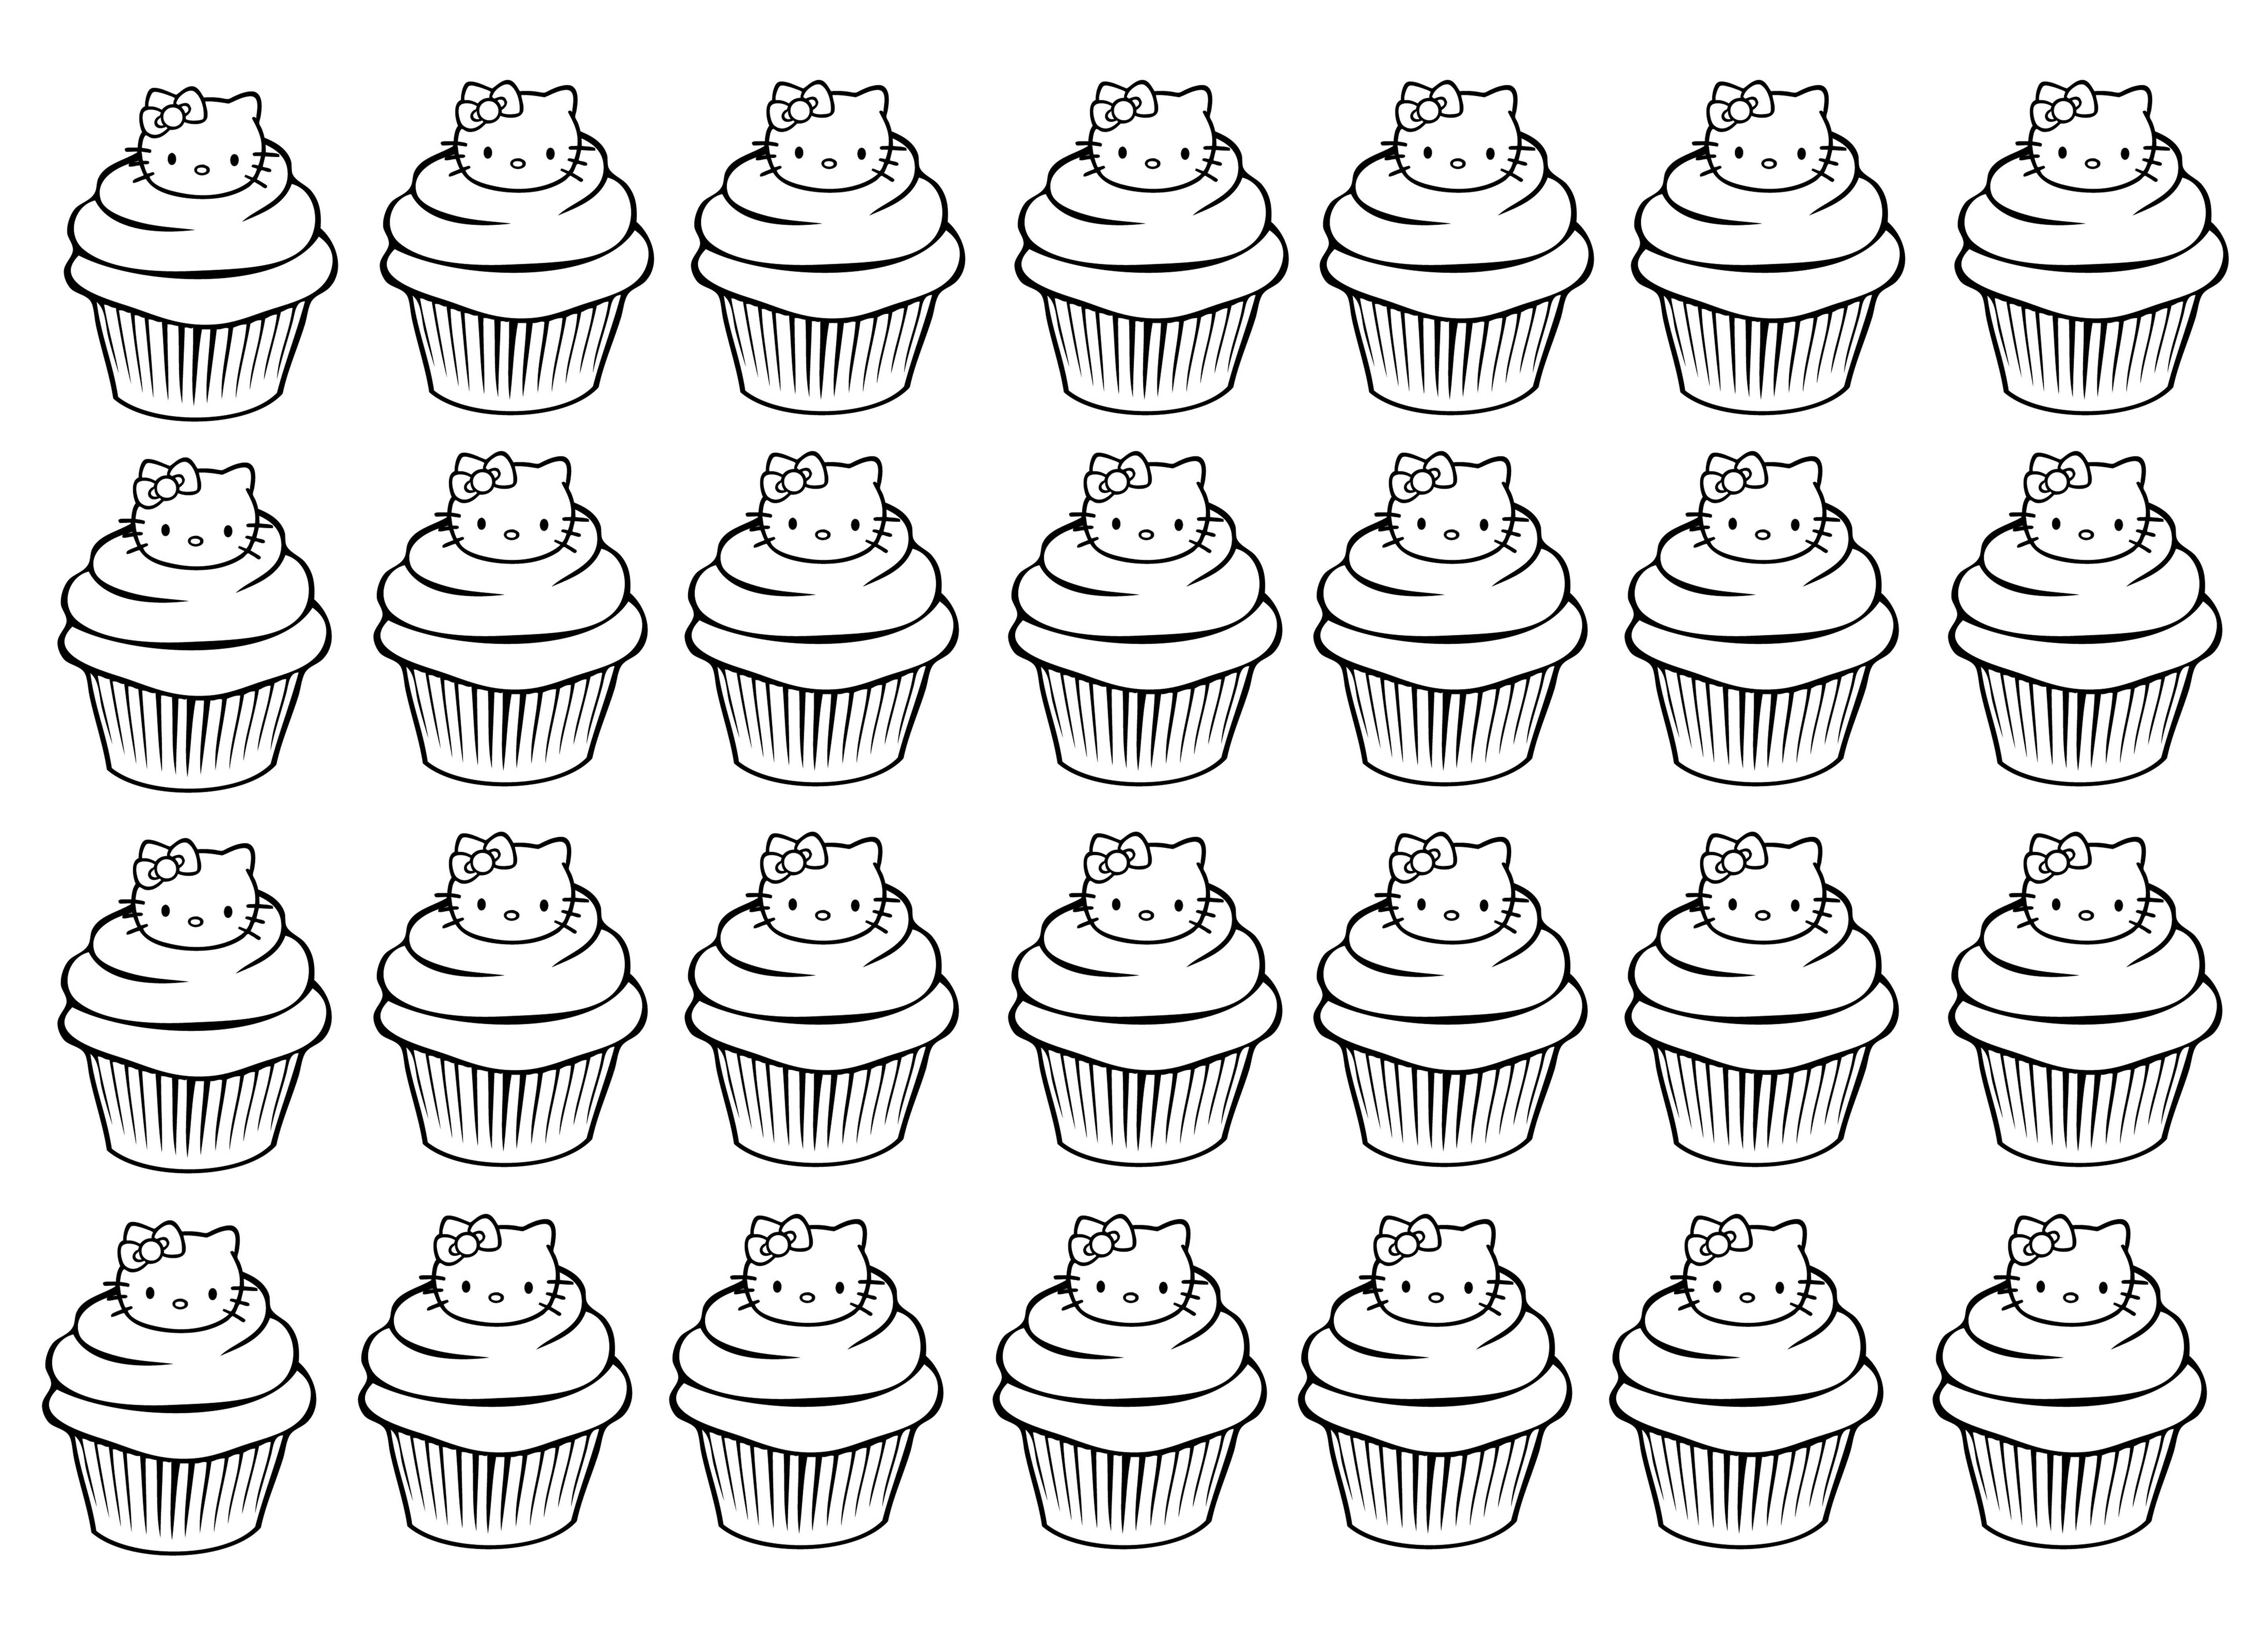 Cupcakes Adult Coloring Pages